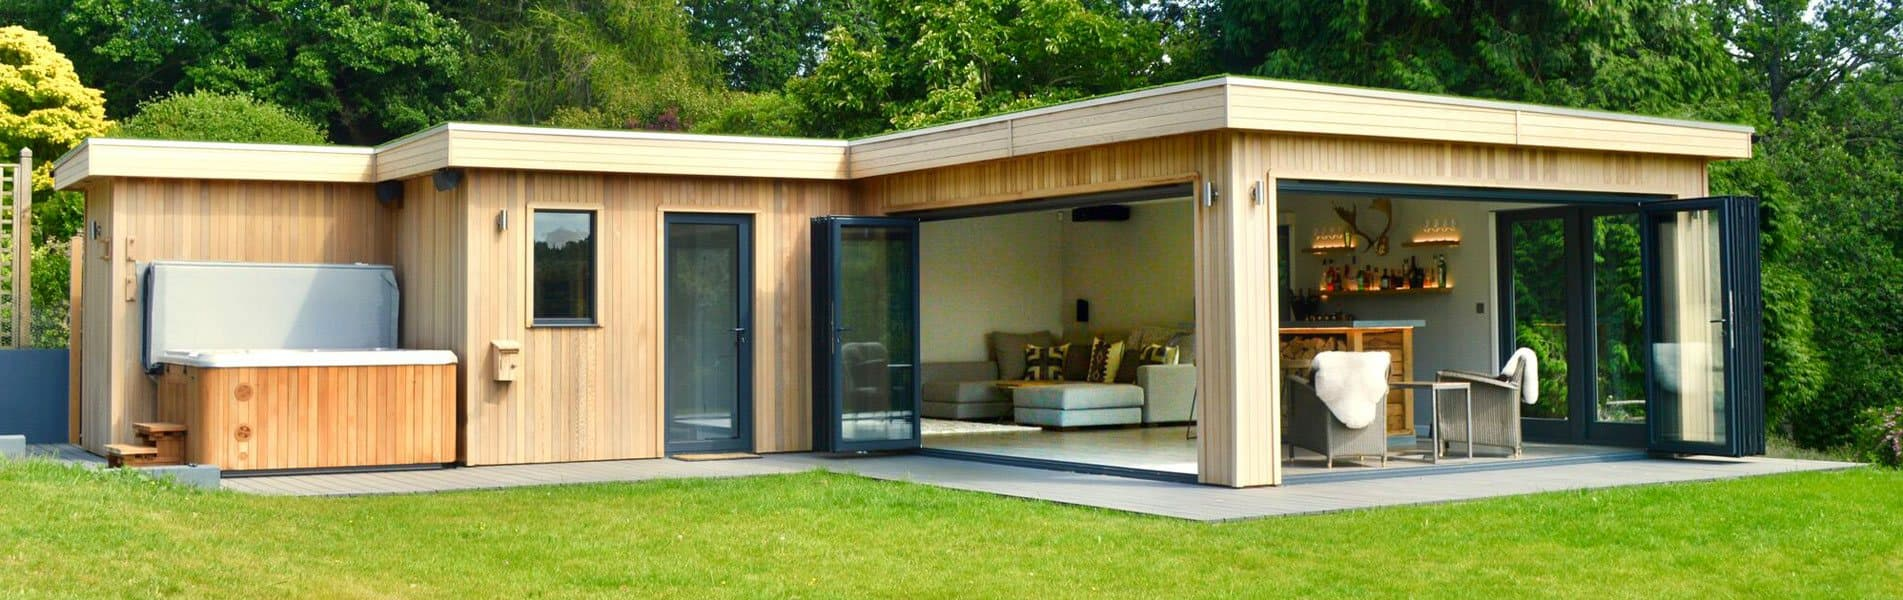 Garden rooms by crown pavilions bespoke outdoor garden for Bespoke garden rooms